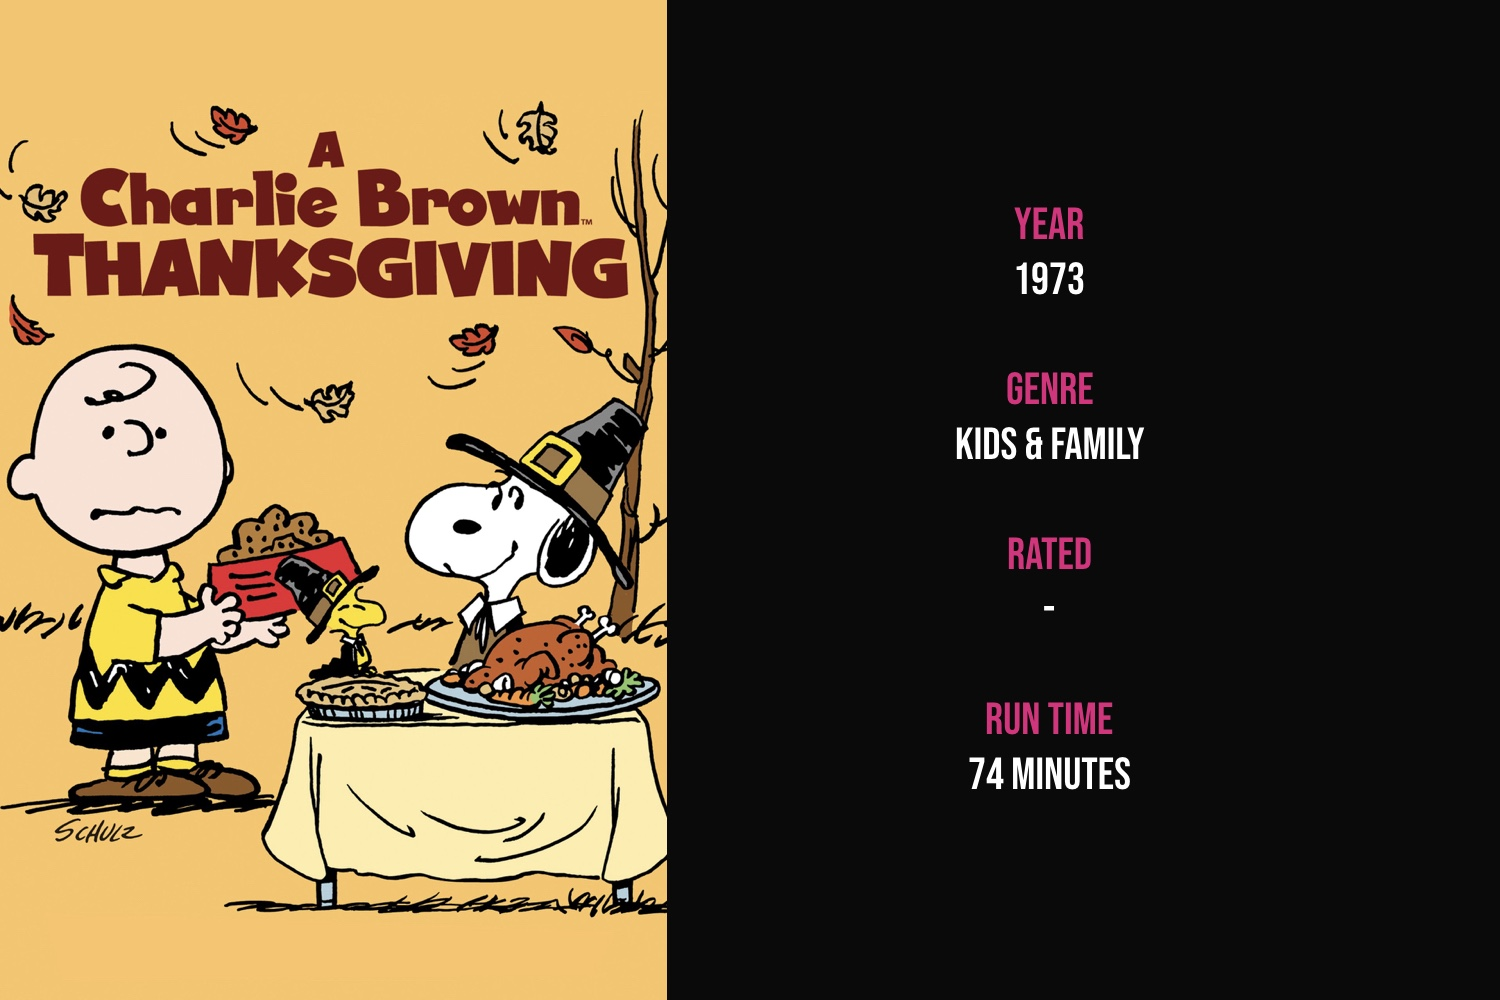 A Charlie Brown Thanksgiving - Peppermint Patty invites herself and a few friends over to Charlie Brown's house for Thanksgiving dinner and learns about the true meaning of Thanksgiving.iTunes | Amazon